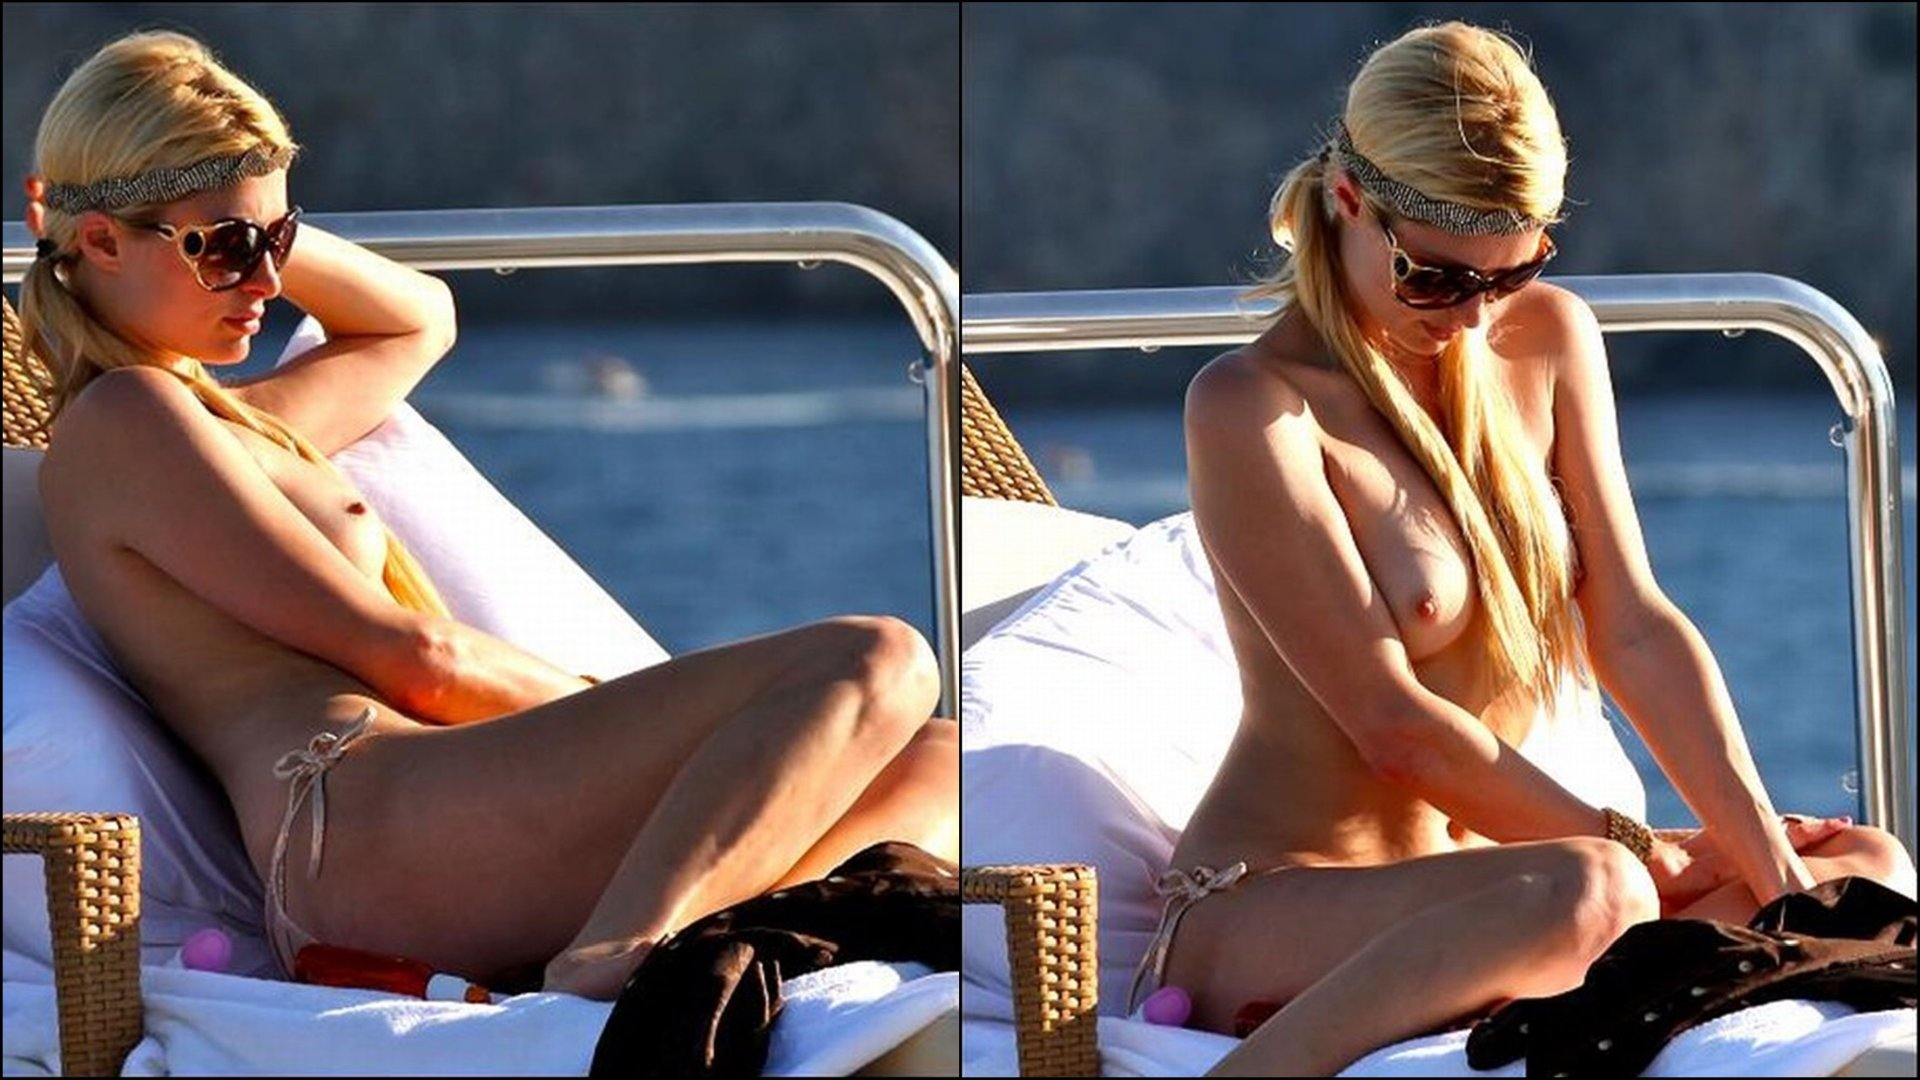 Paris hilton full nude